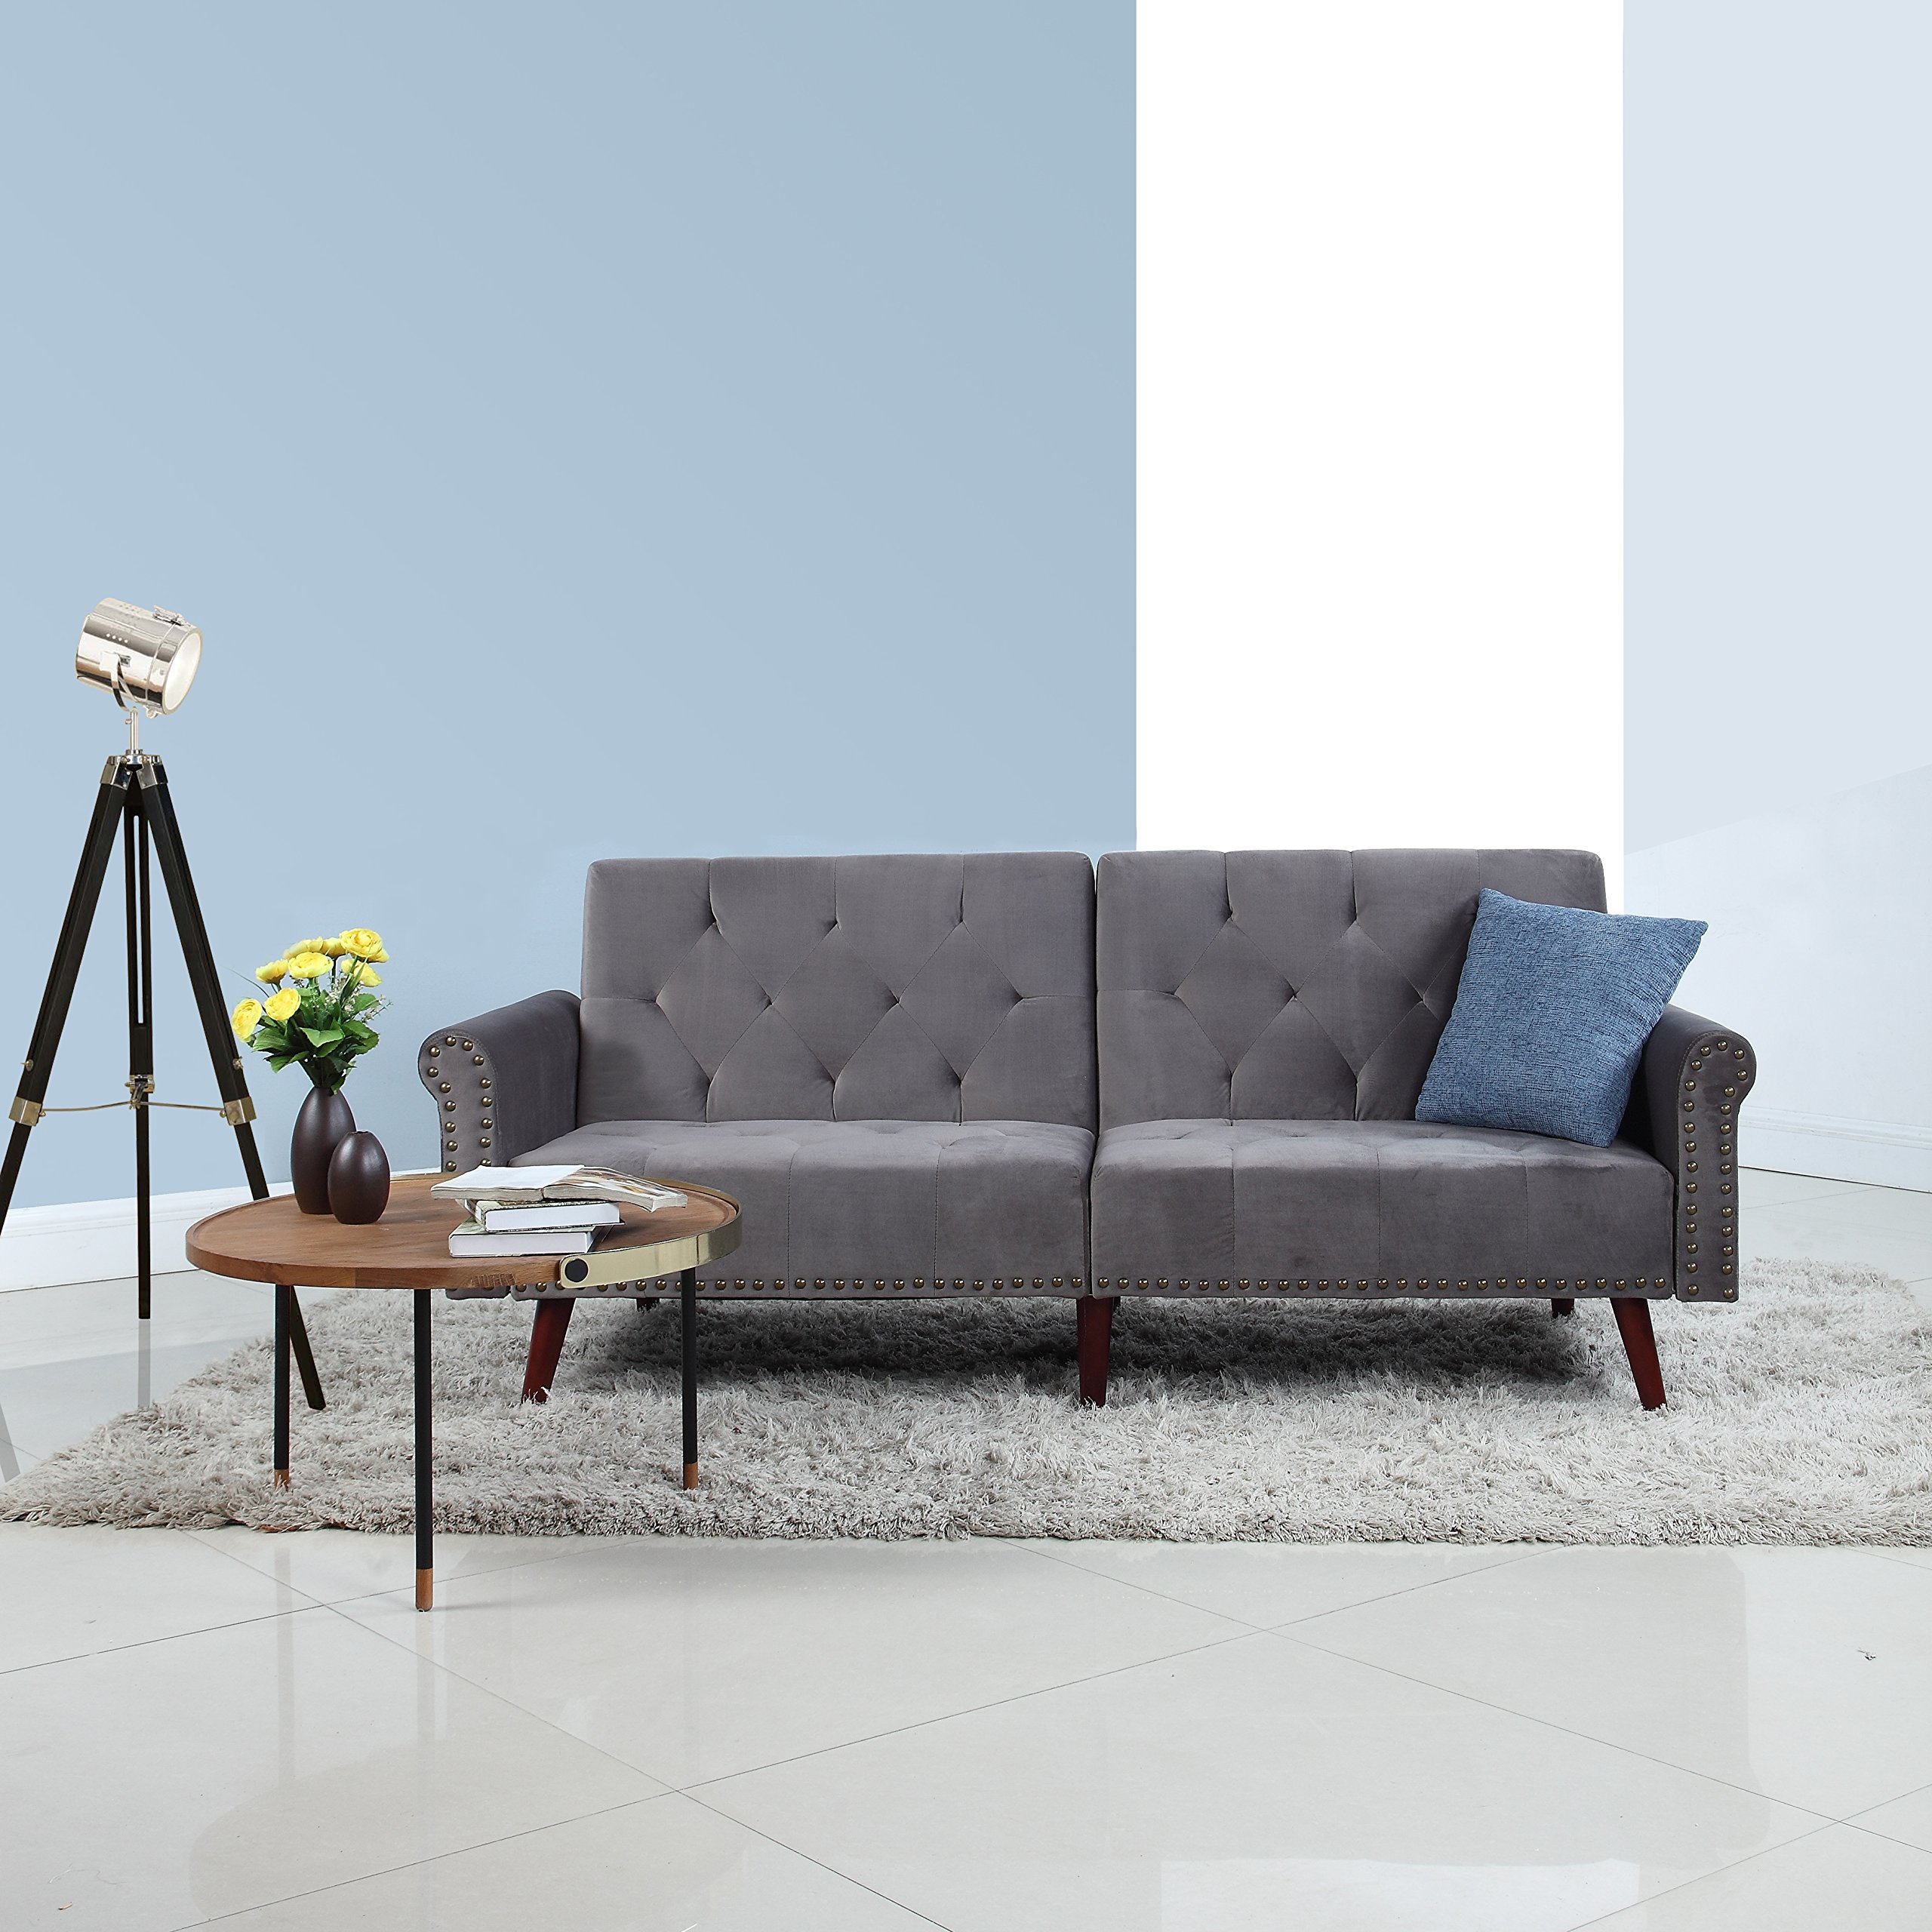 Awe Inspiring Cheap Grey Futon Find Grey Futon Deals On Line At Alibaba Com Squirreltailoven Fun Painted Chair Ideas Images Squirreltailovenorg